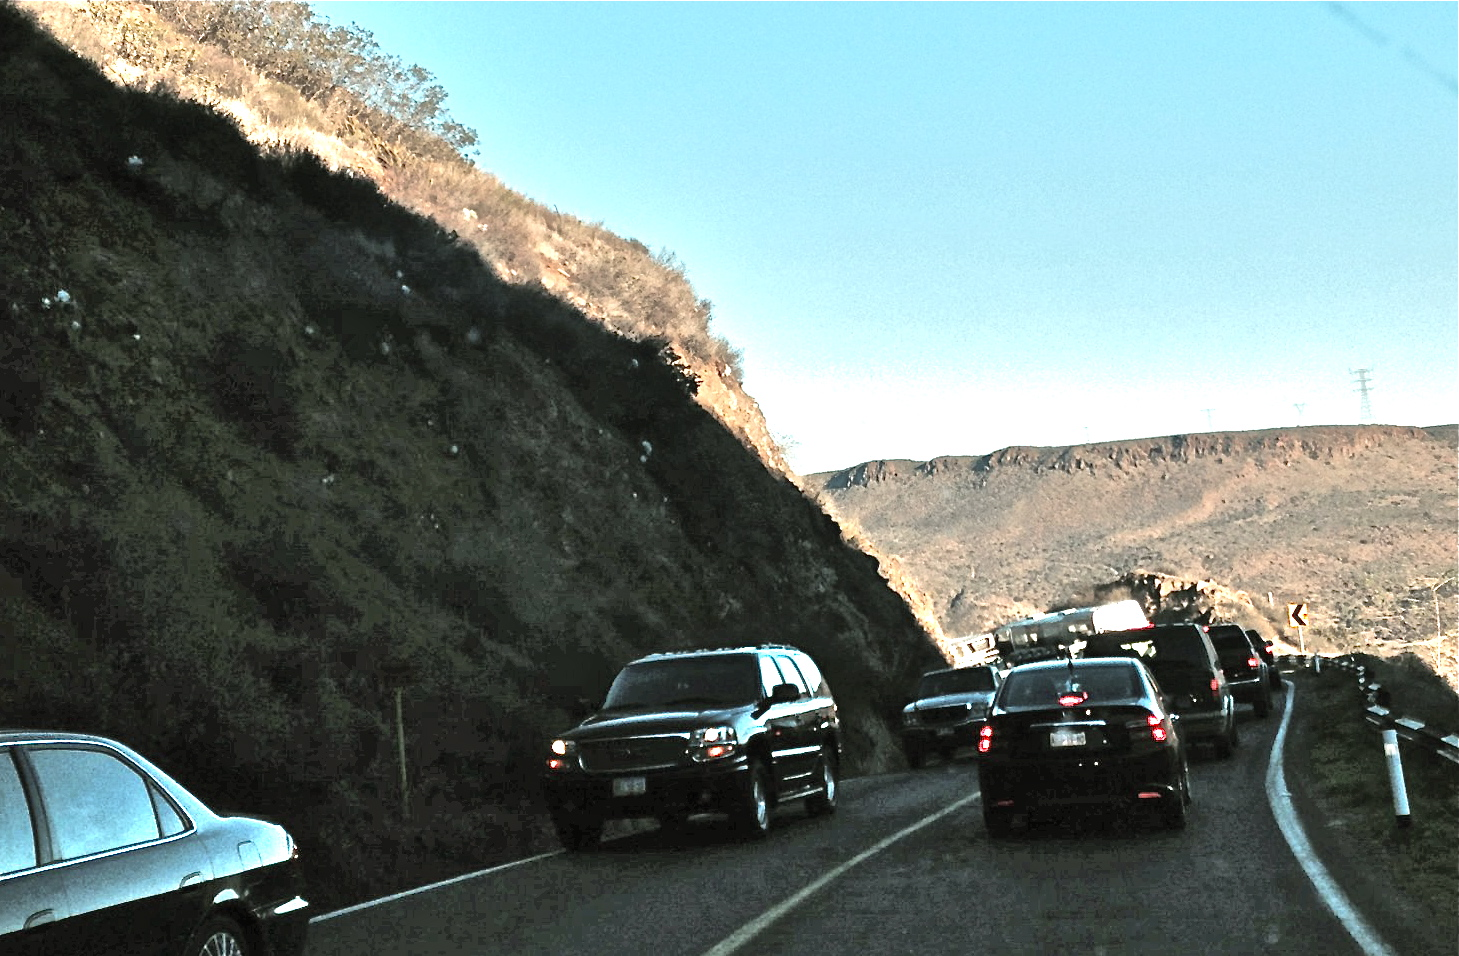 Traffic backing up on the start of the descent just south of La Mision